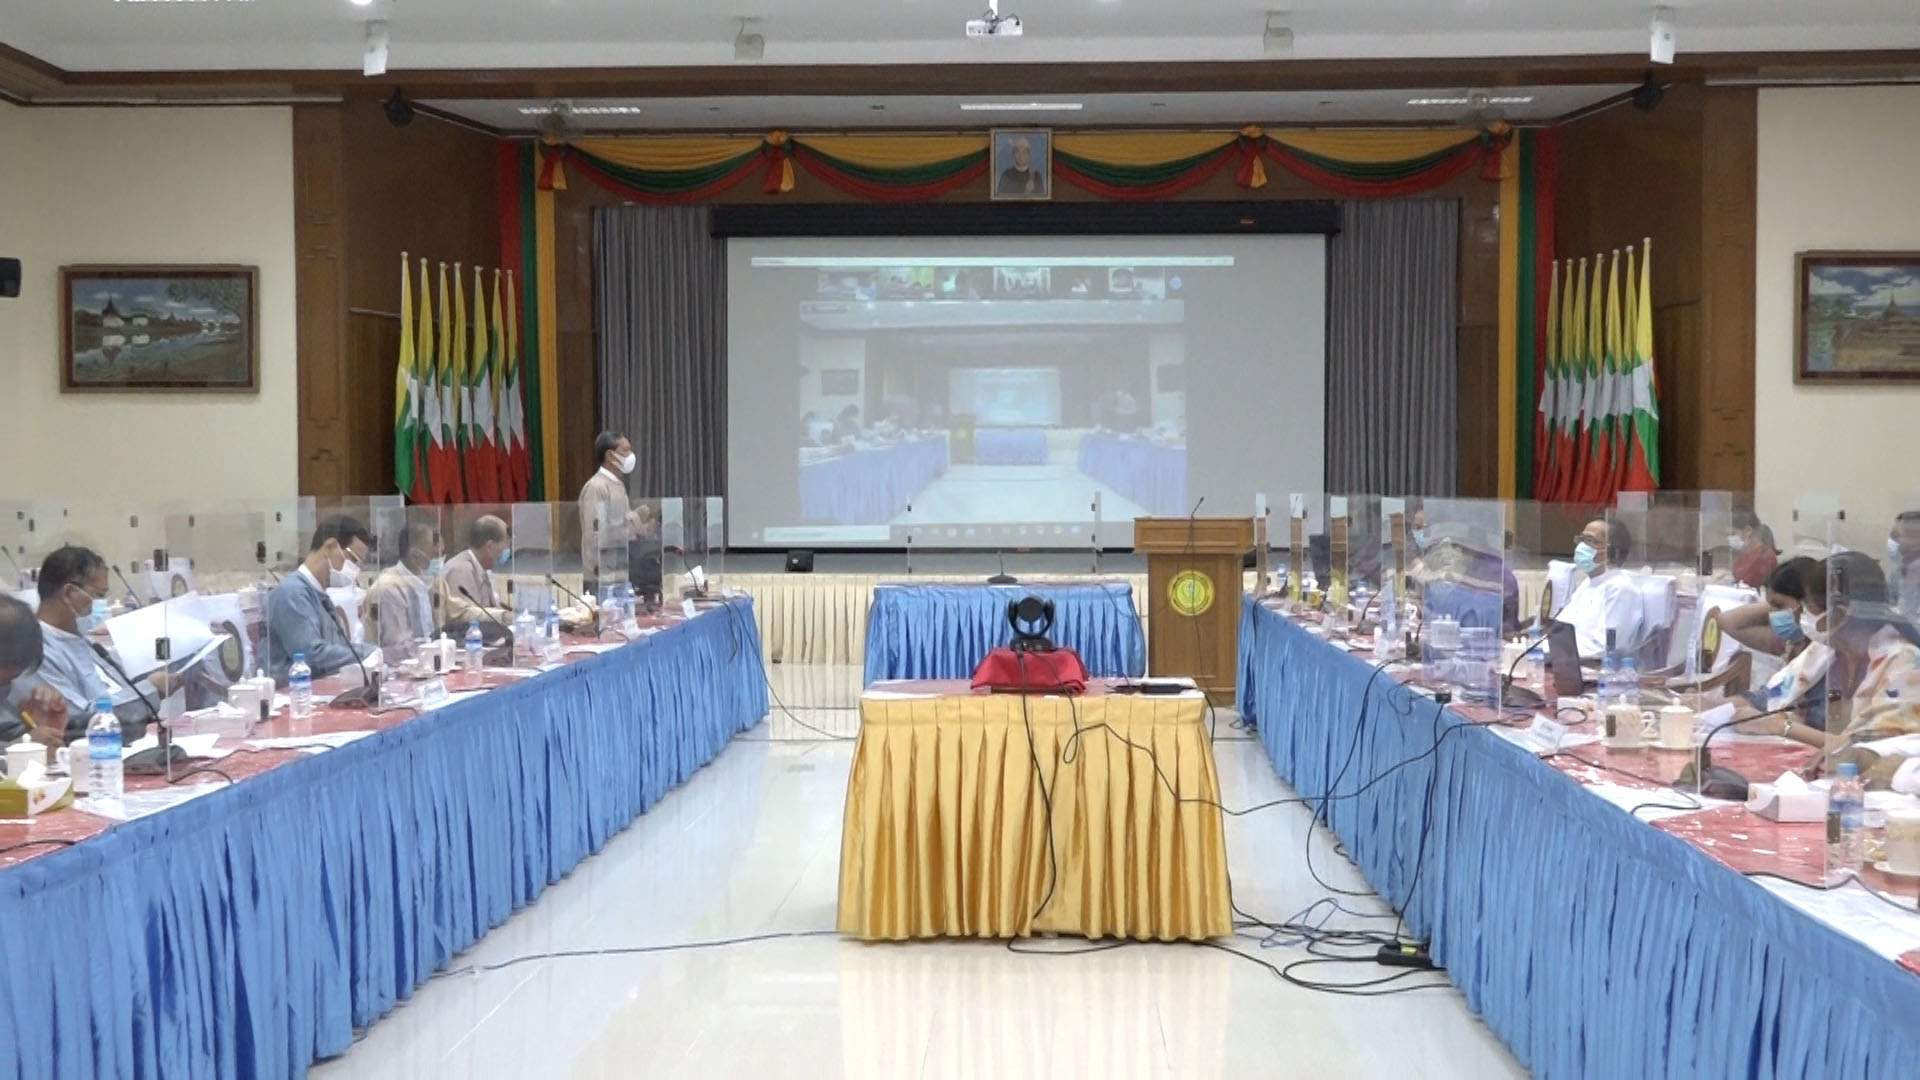 Union Minister Dr Myo Thein Gyi (left top) speaks during the meeting for reopening schemes of high schools. PHOTO: MNA